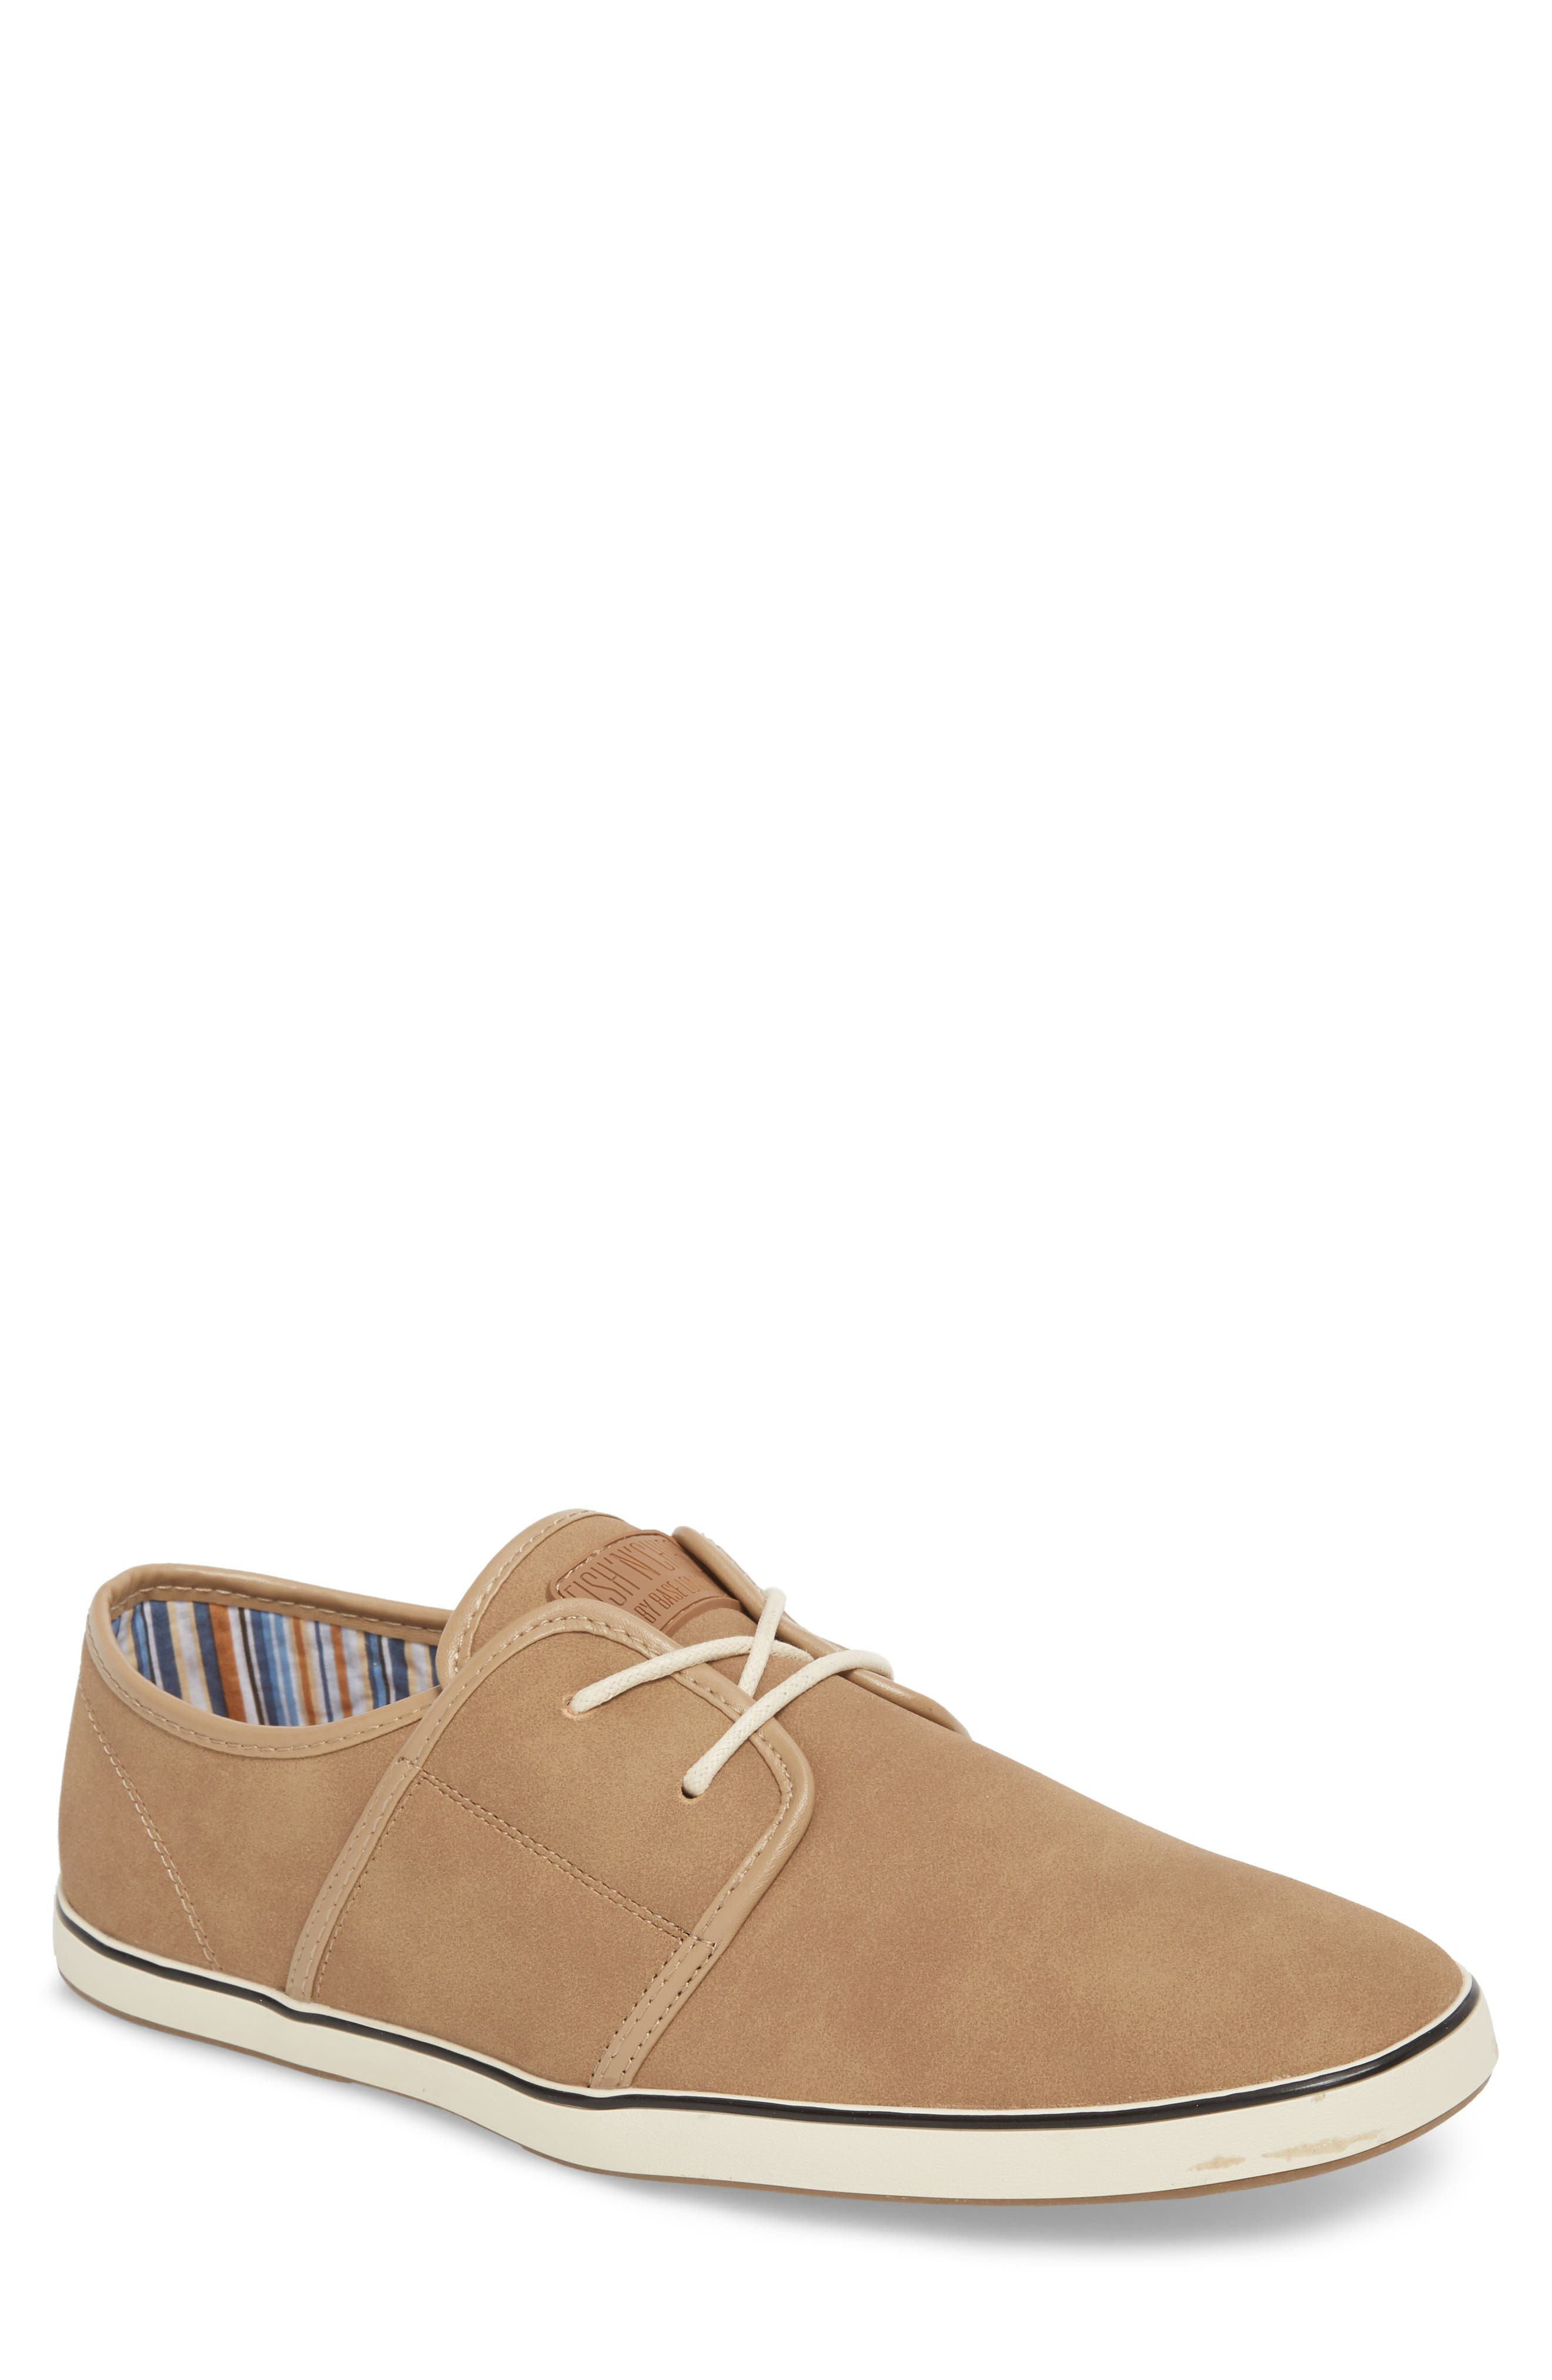 Fish 'N' Chips Surrey Low Top Sneaker,                             Main thumbnail 1, color,                             Soft Clay Faux Suede